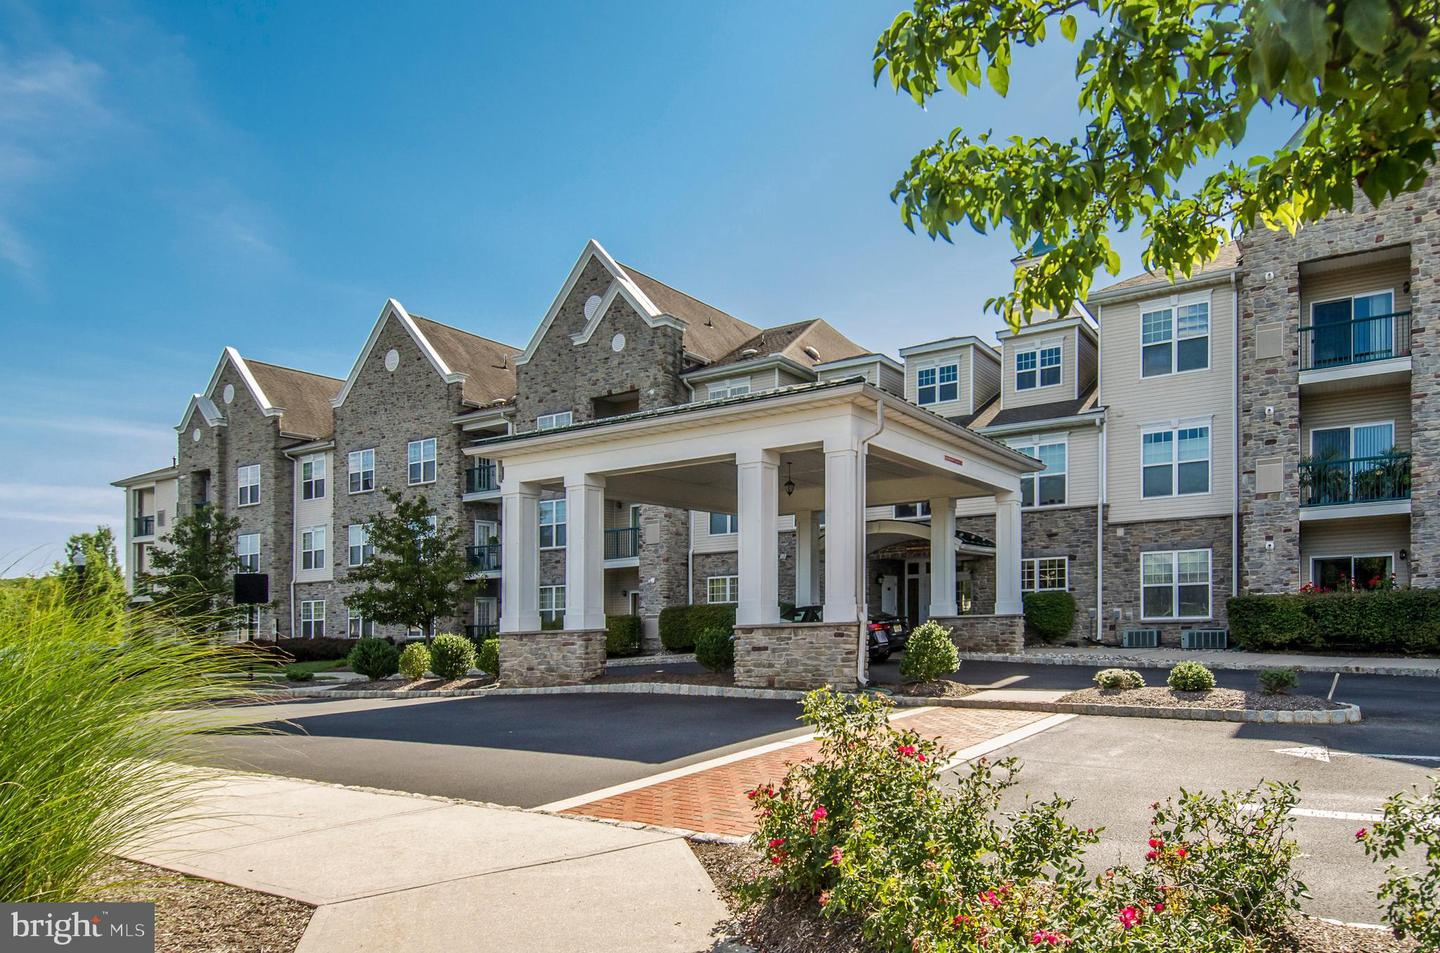 100 MIDDLESEX BLVD #328, PLAINSBORO, NJ 08536